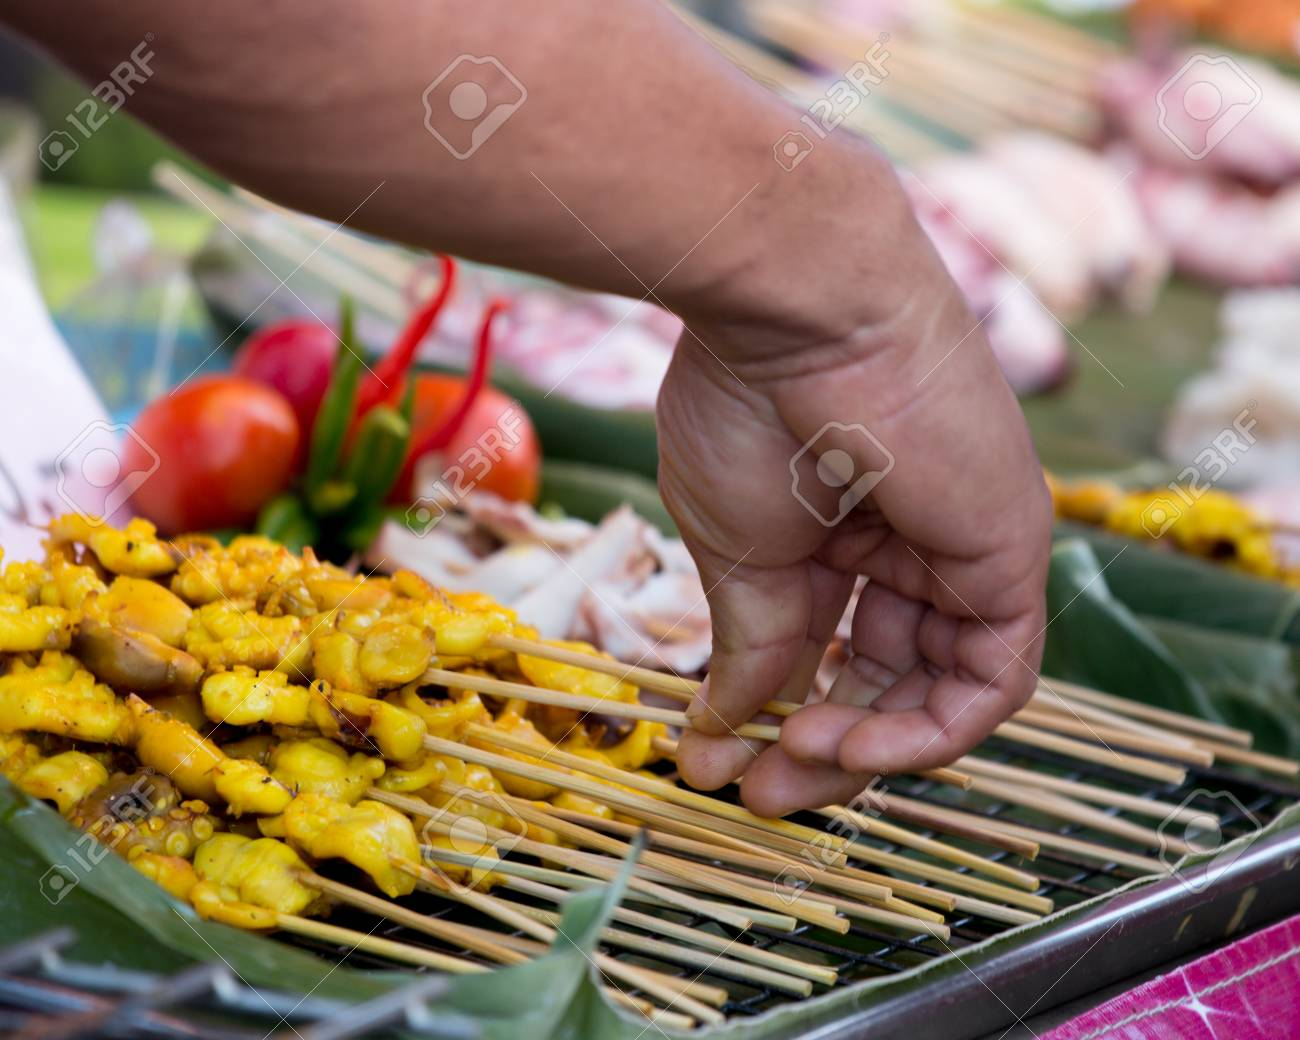 https://previews.123rf.com/images/muangsatun/muangsatun1707/muangsatun170700117/81856102-food-squid-tentacles-on-the-grill-.jpg